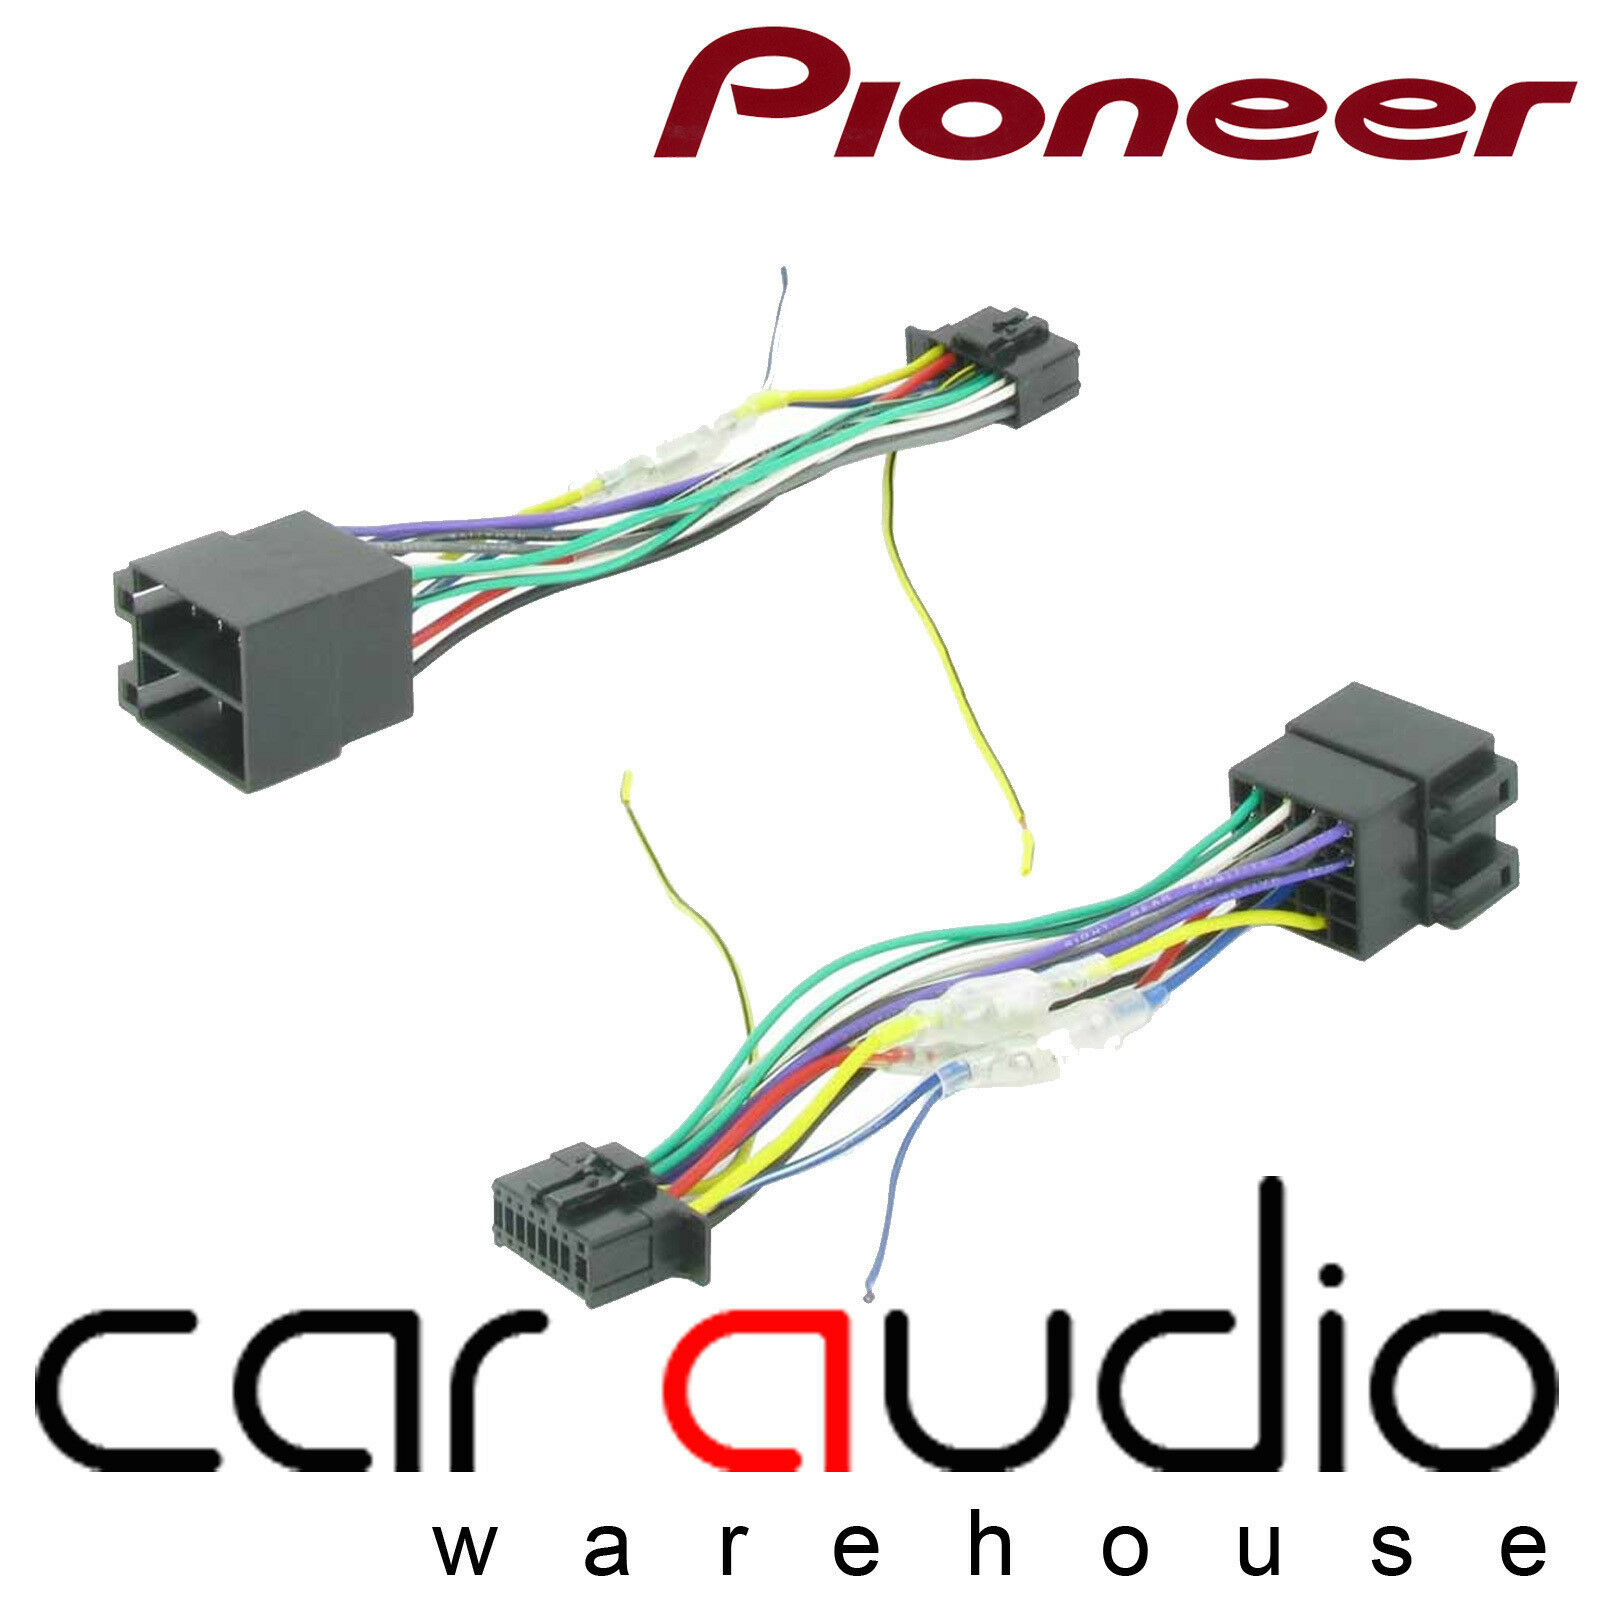 Pioneer 16 Pin Iso Head Unit Replacement Car Stereo Wiring Harness Ct21pn07 1 Of 1free Shipping See More